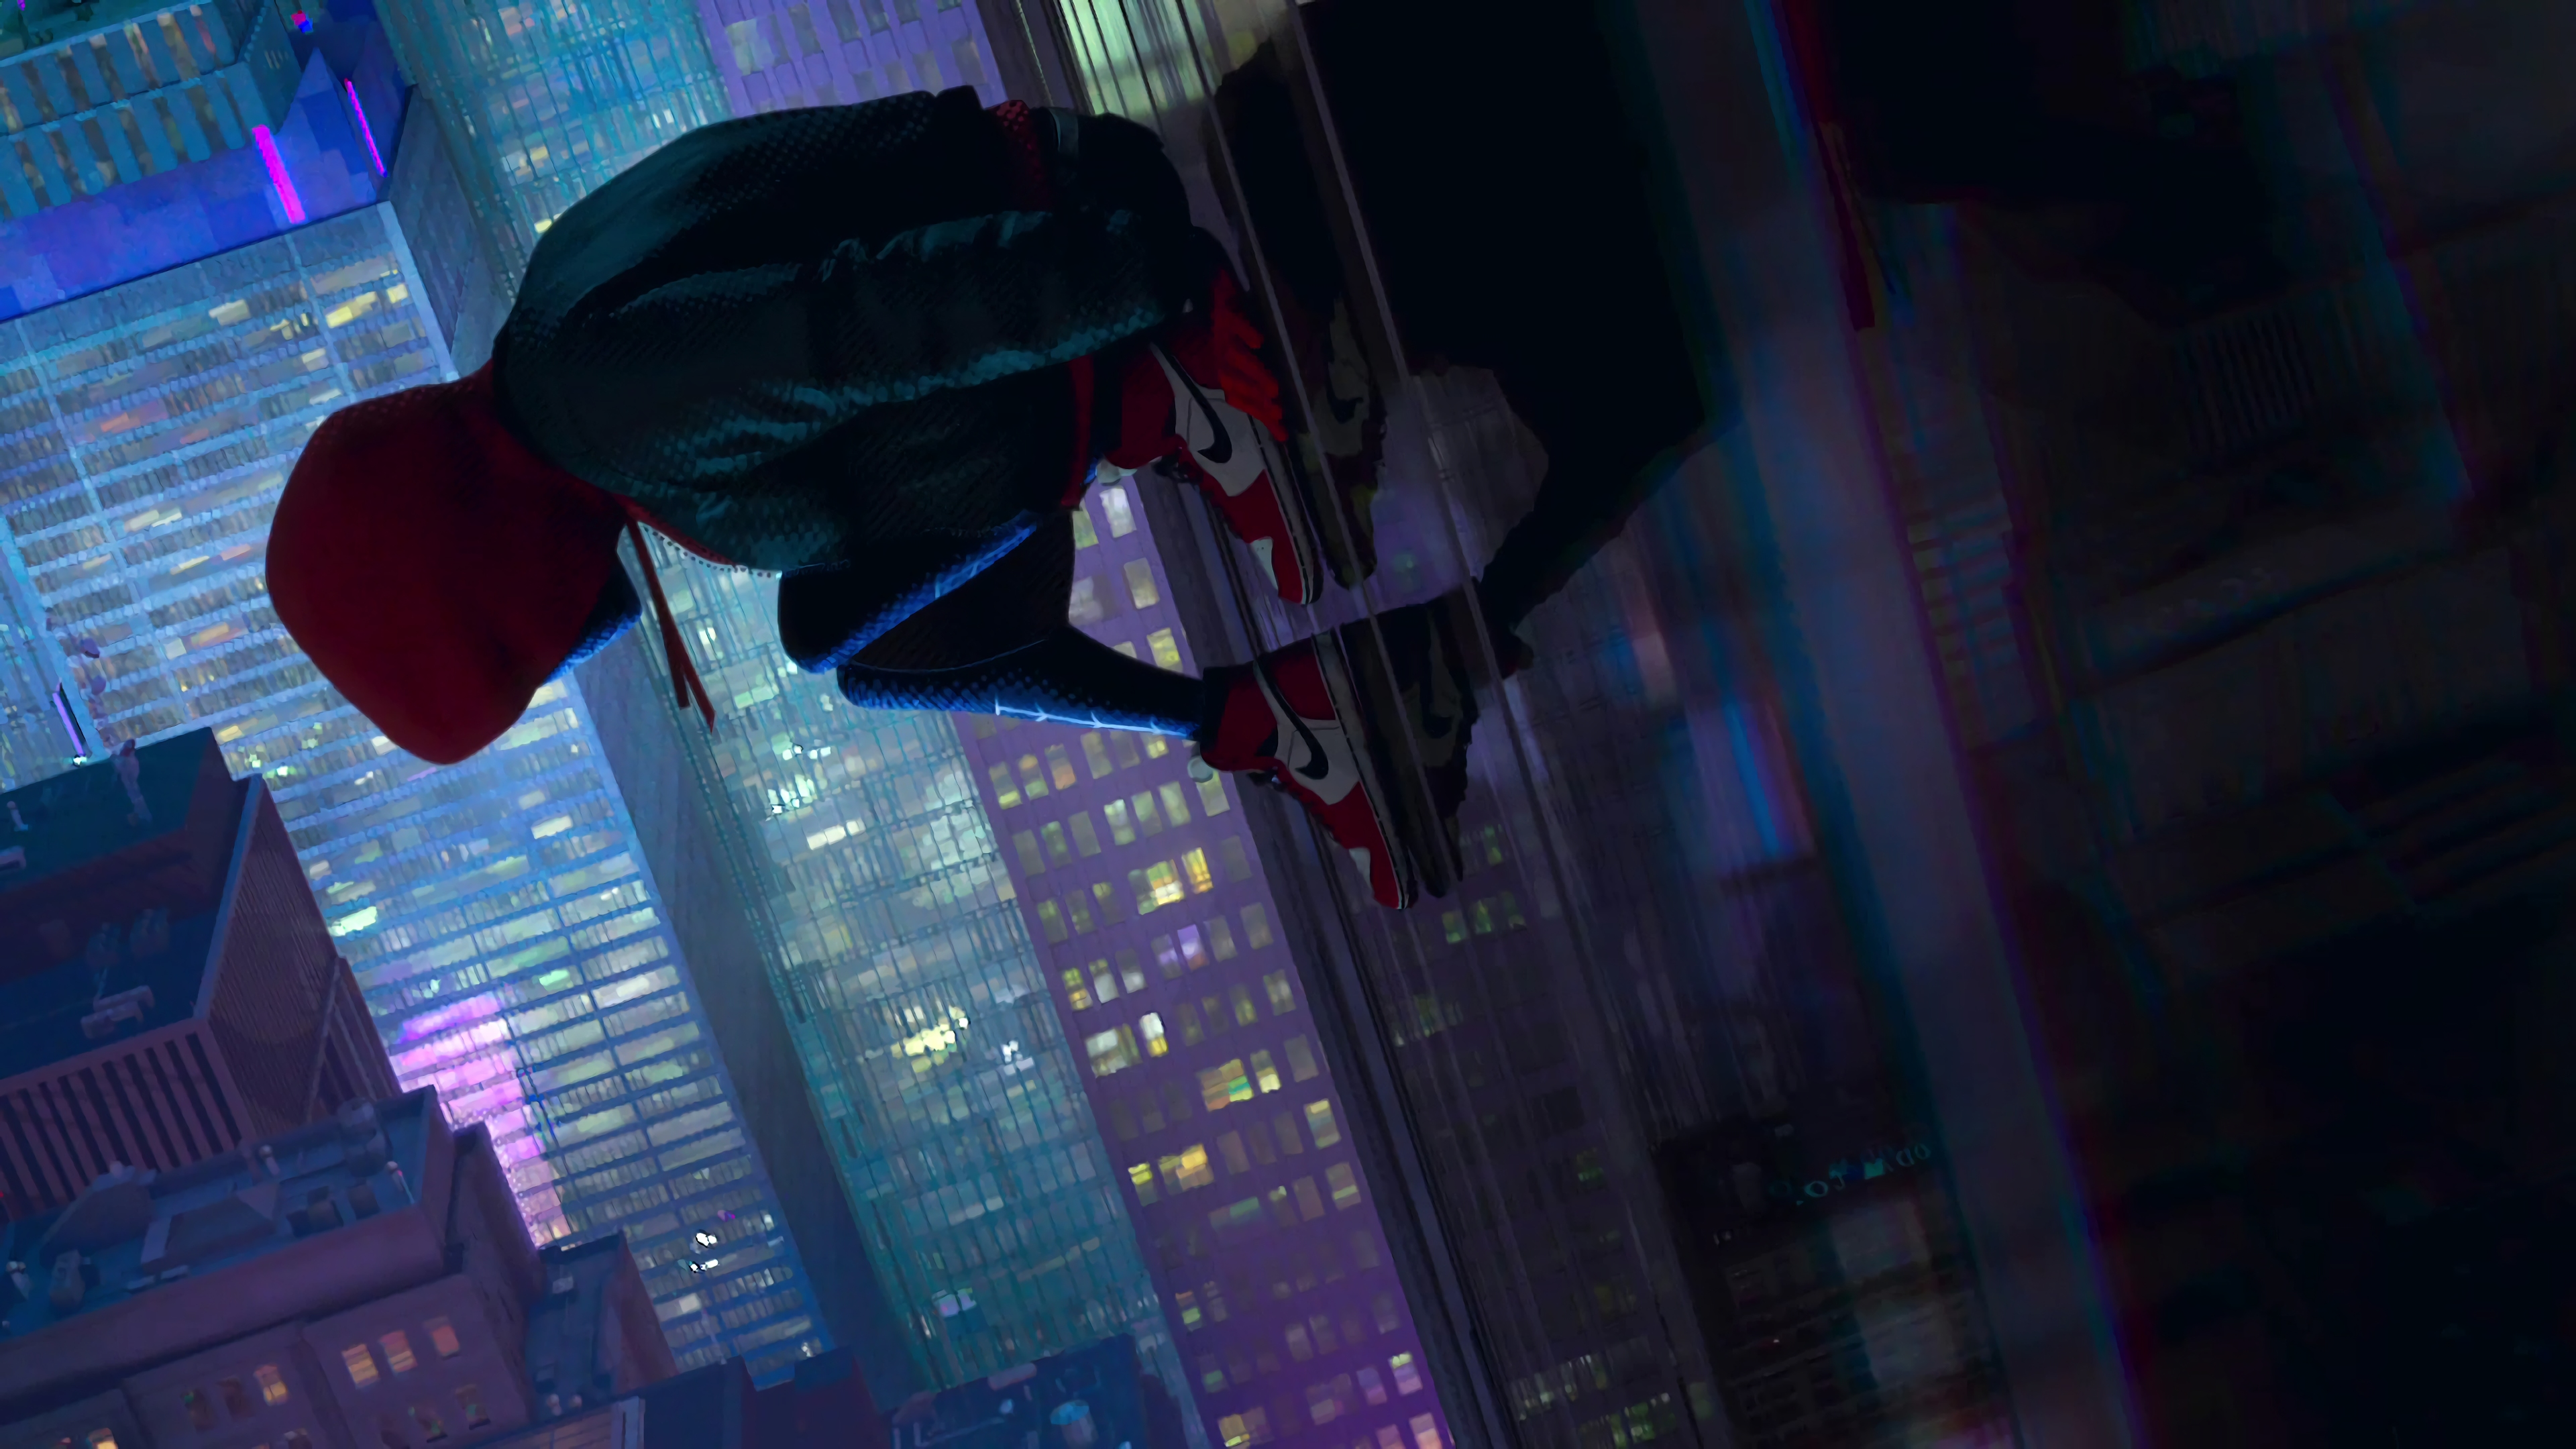 Into The Spider Verse X Wallpaper Iwallpaper: Spider-Man: Into The Spider-Verse 4k Ultra HD Wallpaper